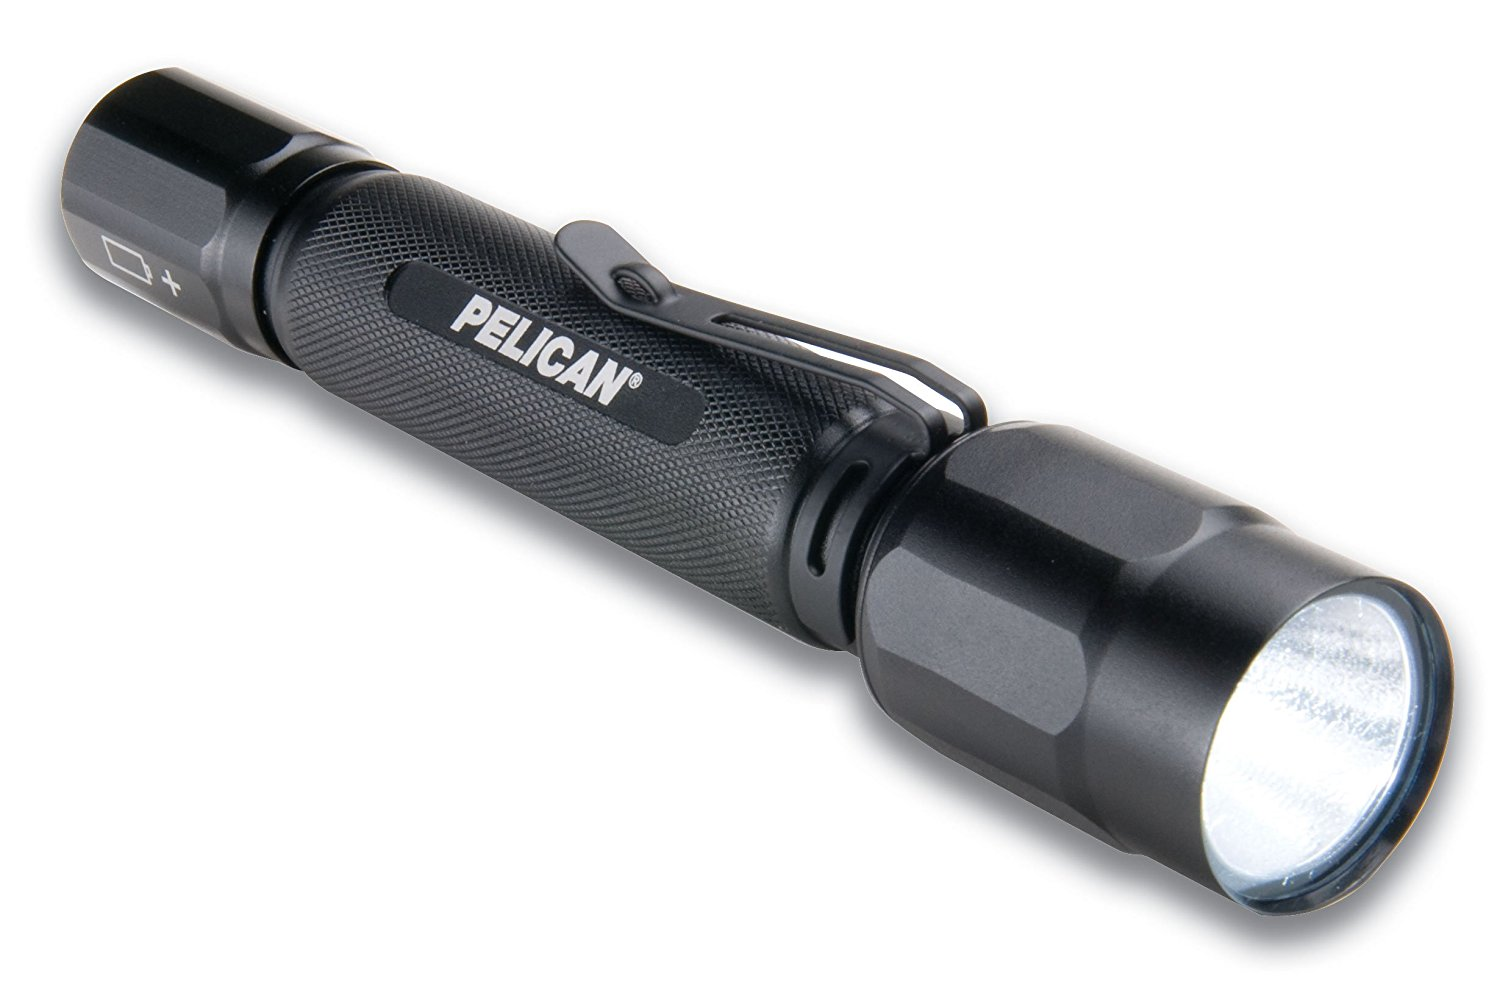 Pelican 2360 LED Tactical Light